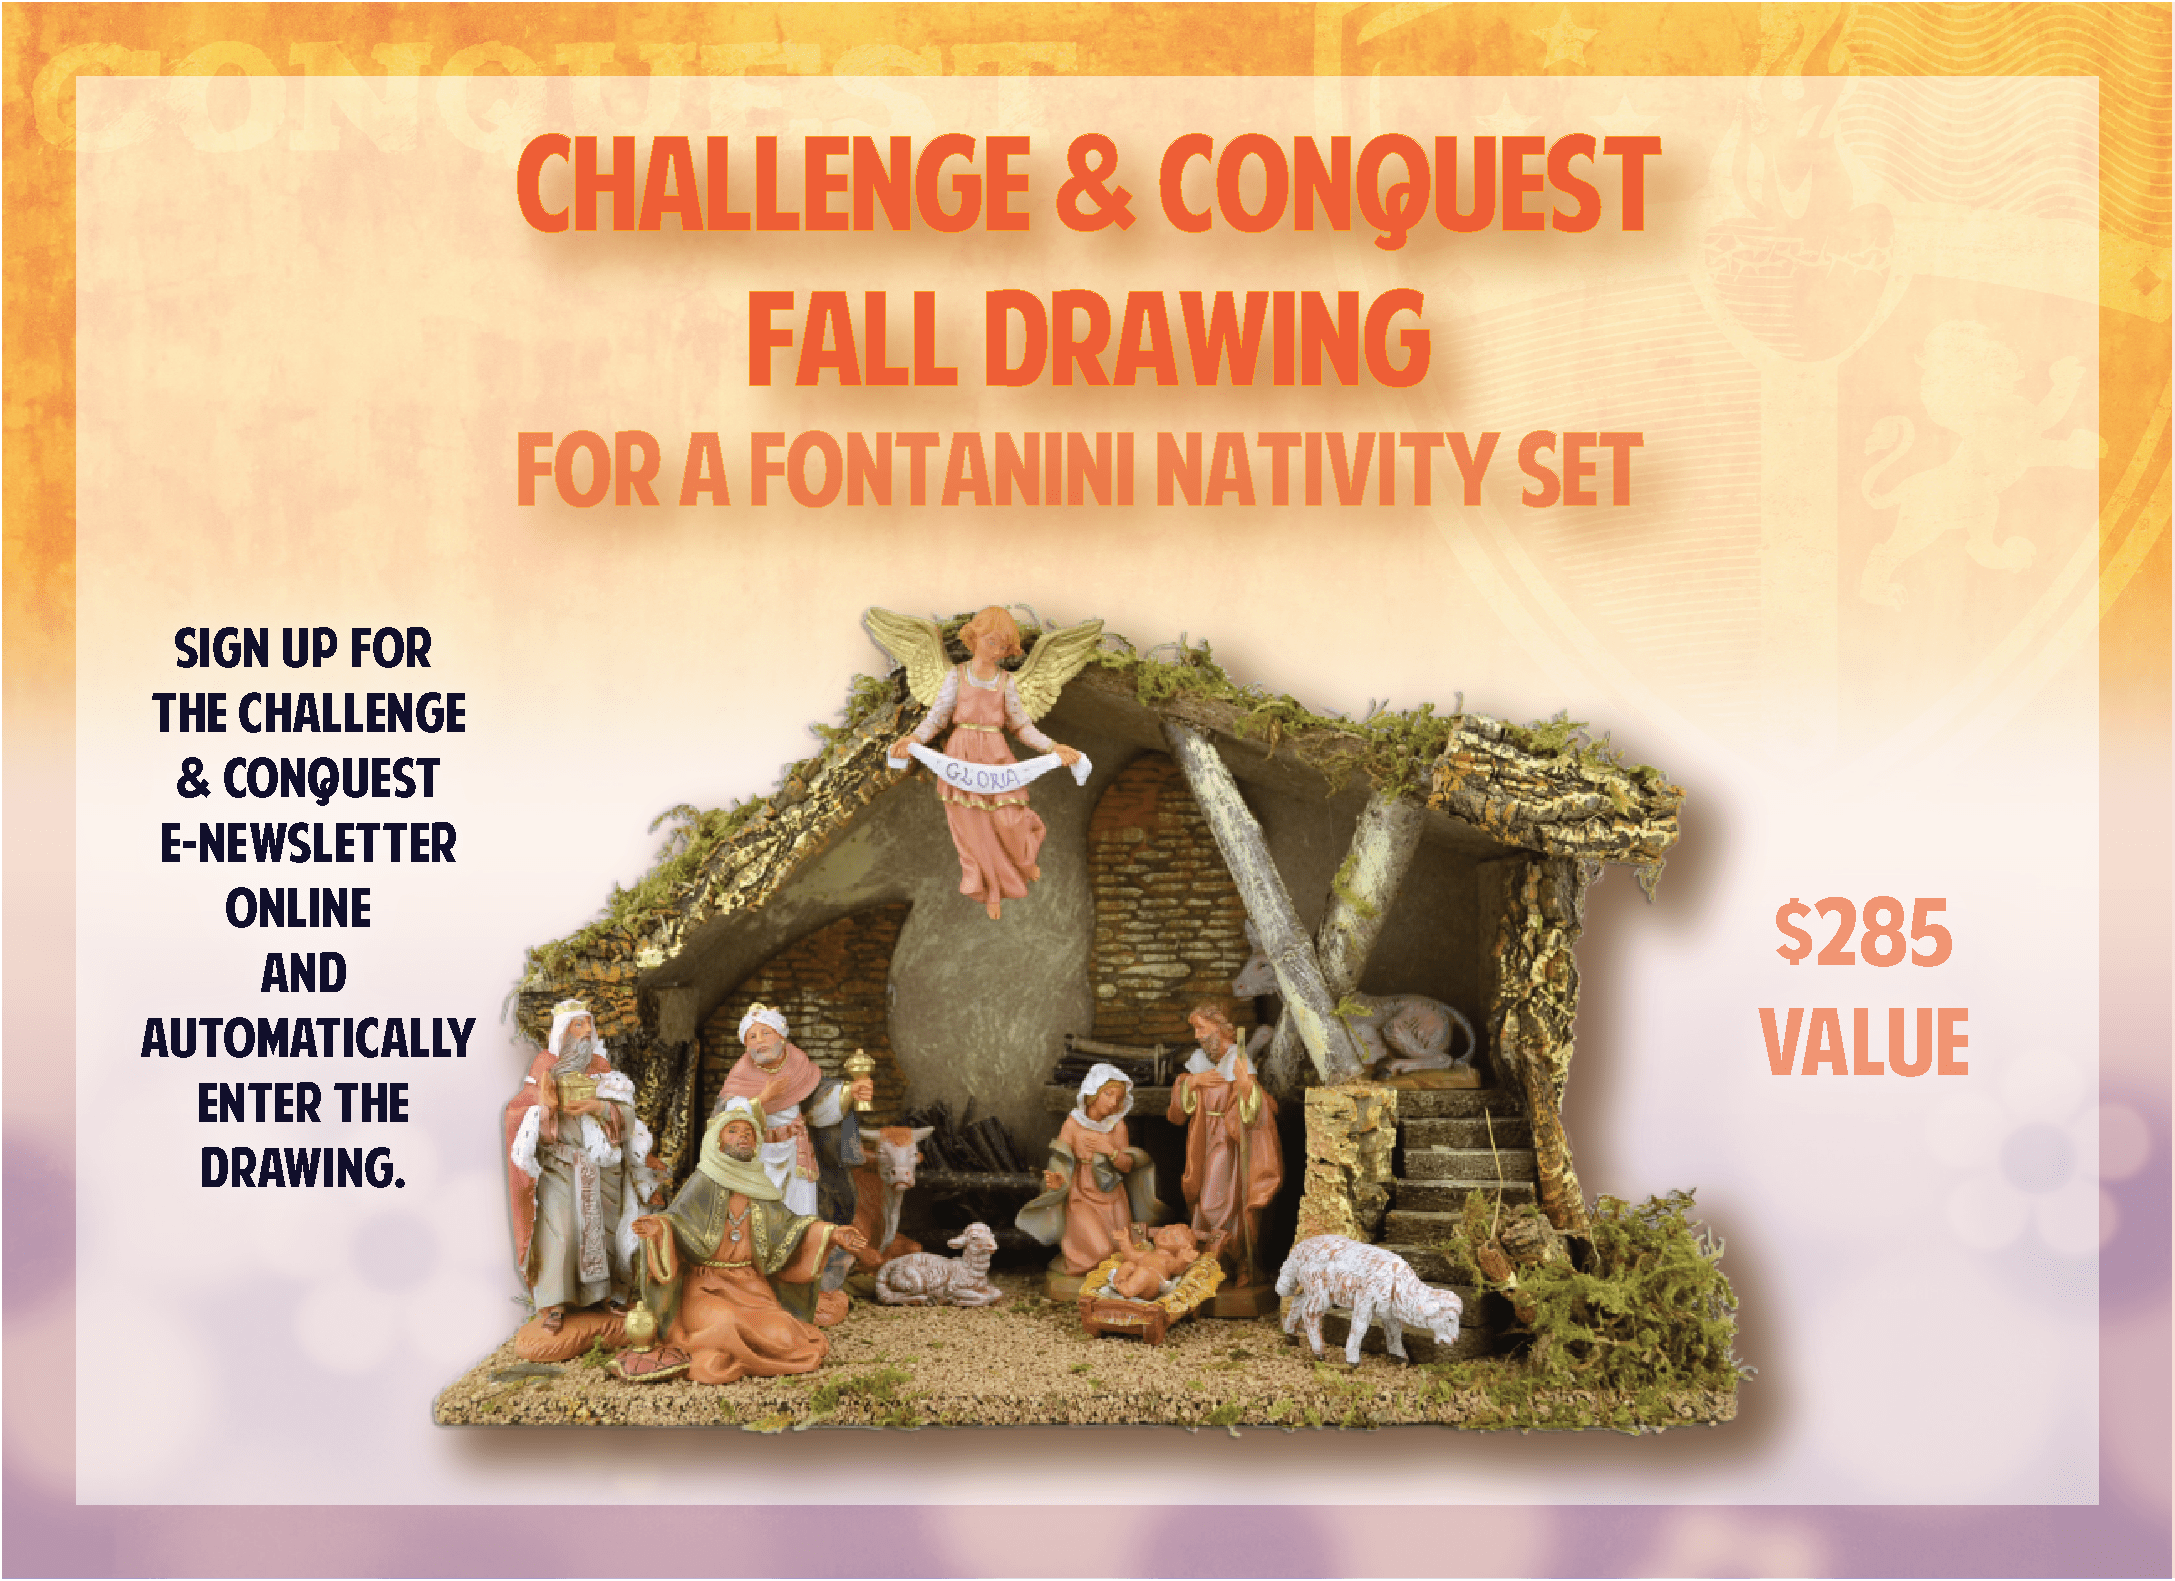 Nativity Raffle Websites